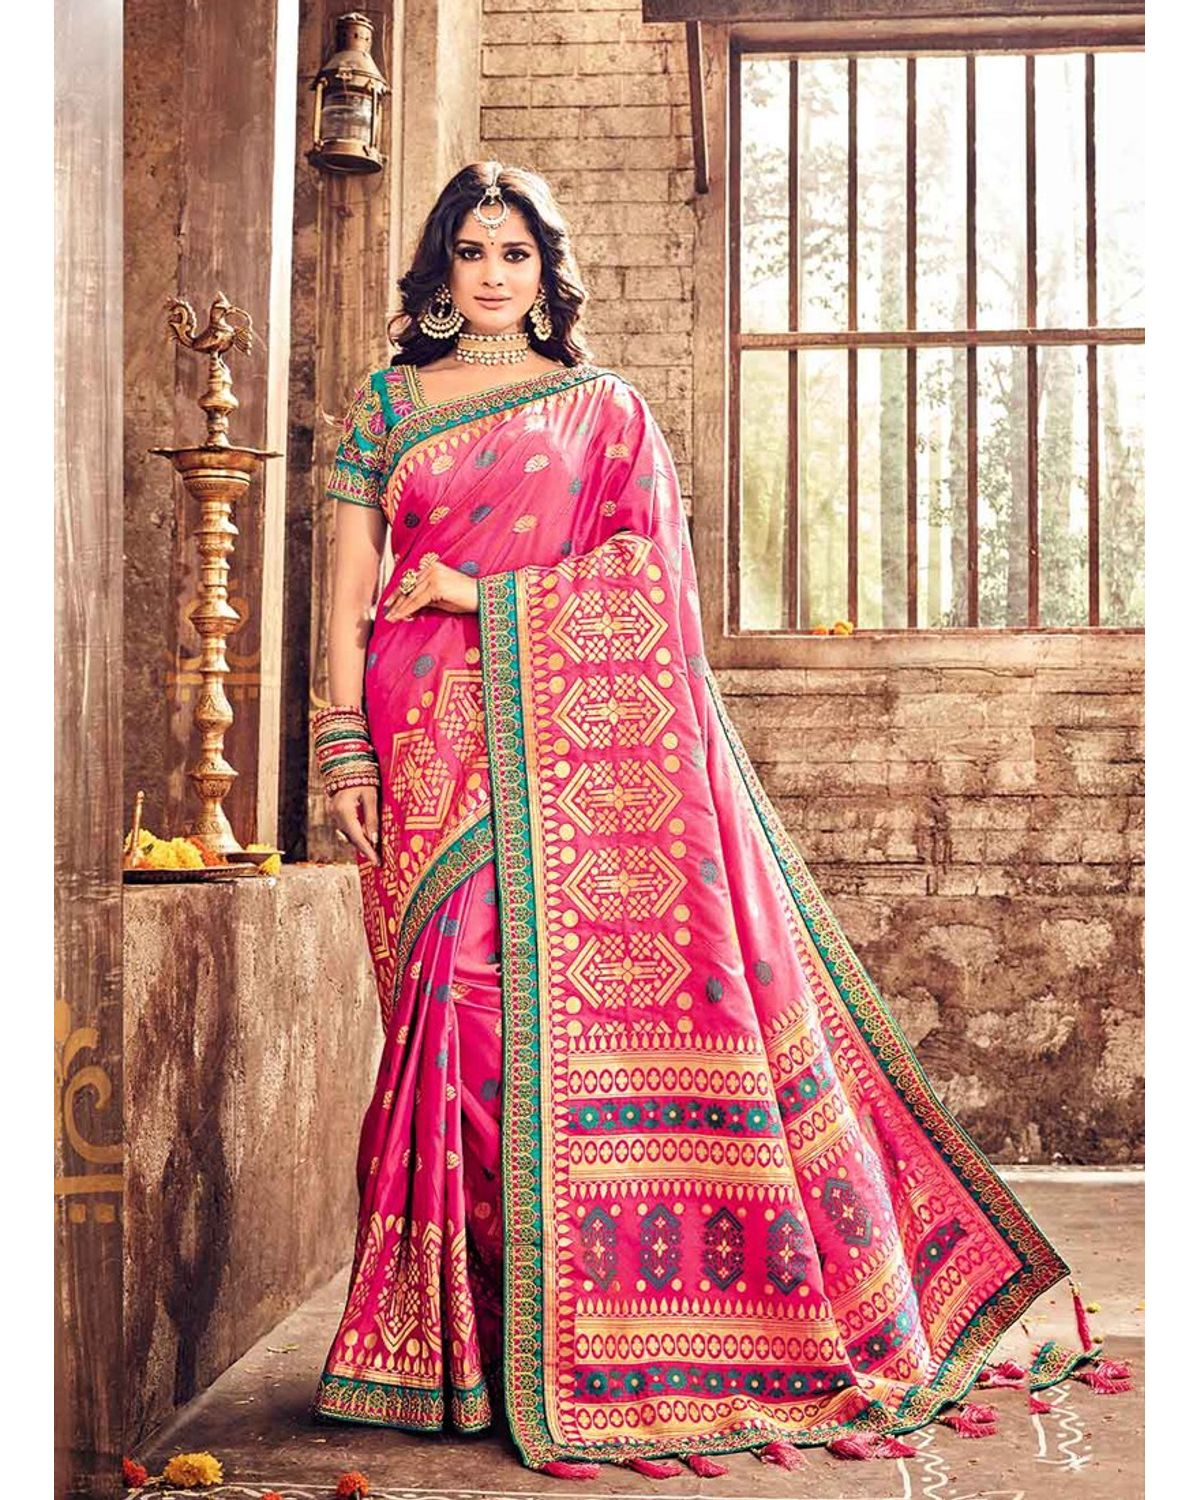 Banarasi Silk Wedding Saree With Meenakari Weave In Pink